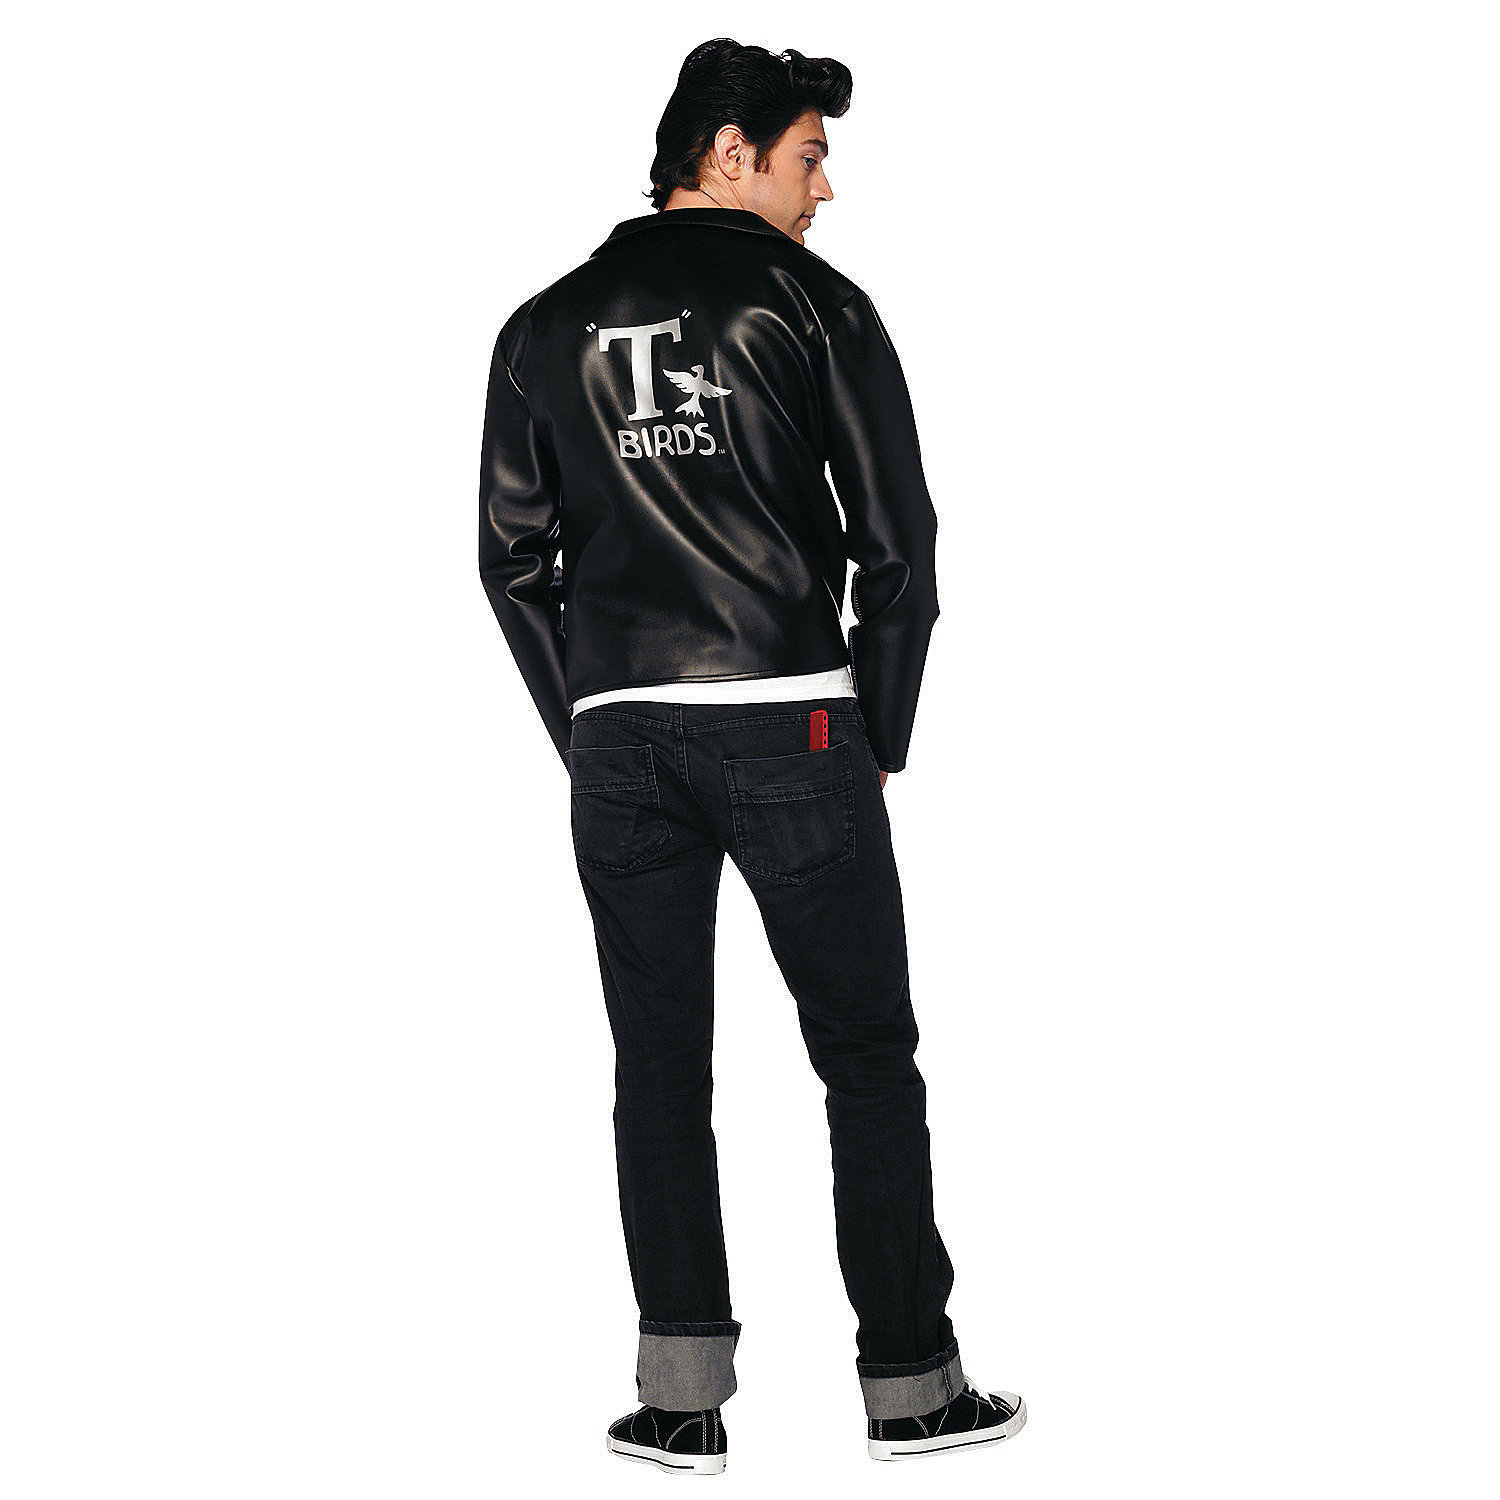 Grease T Bird Jacket Extra Large Adult Menu2019s Costume - Oriental Trading